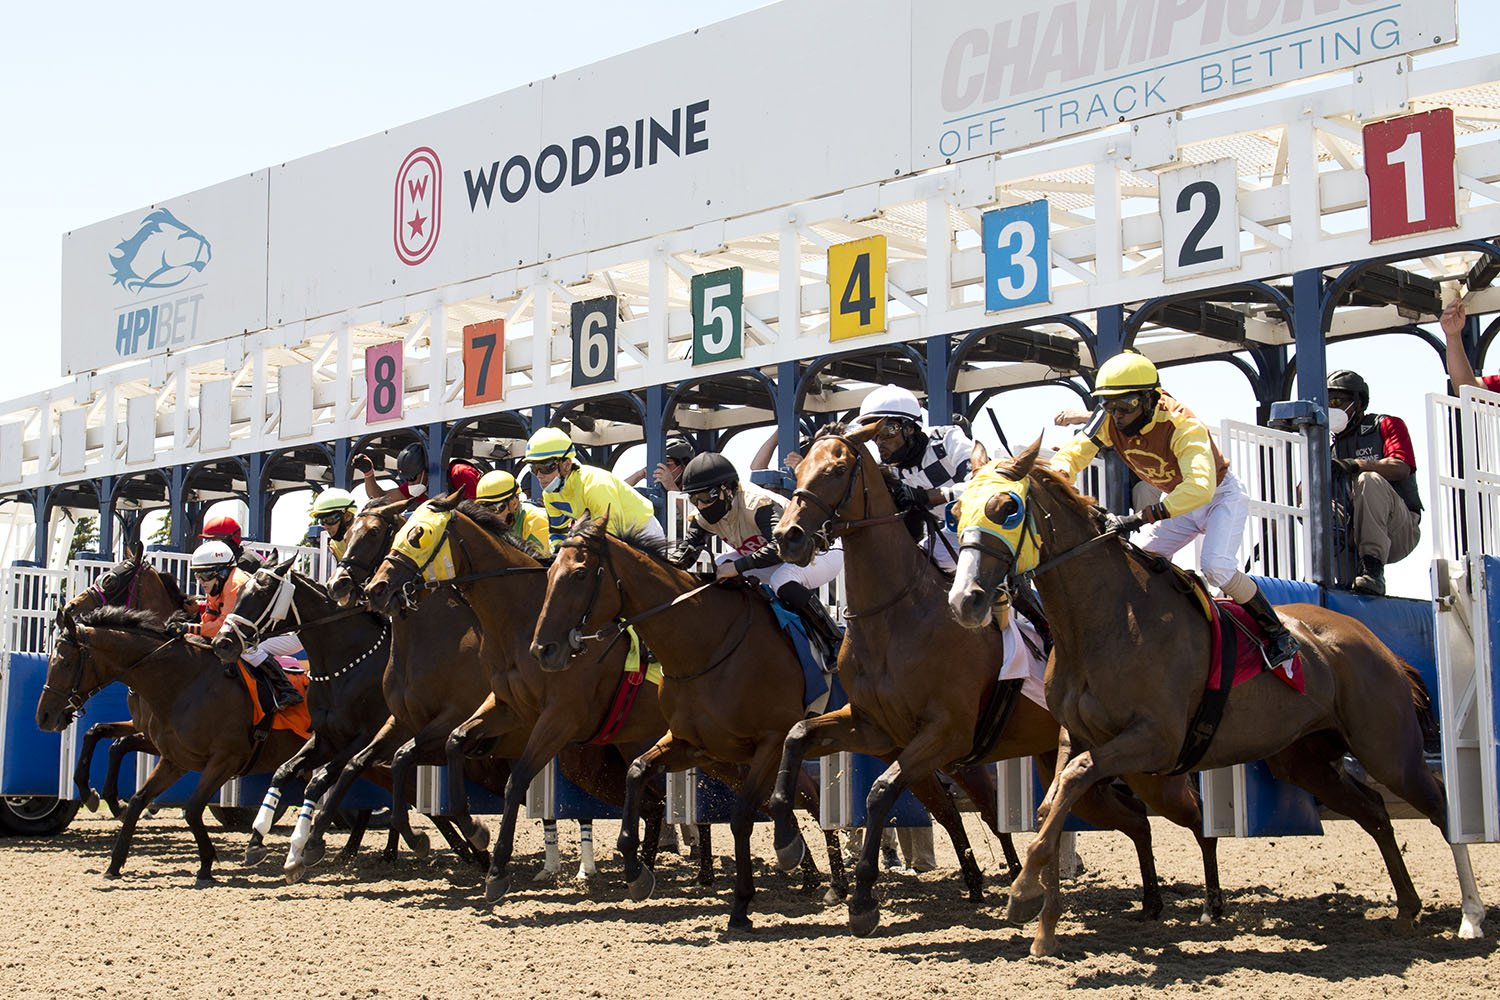 The 2021 Thoroughbred meet kicked off on Saturday afternoon at Woodbine Racetrack. (Michael Burns Photo)